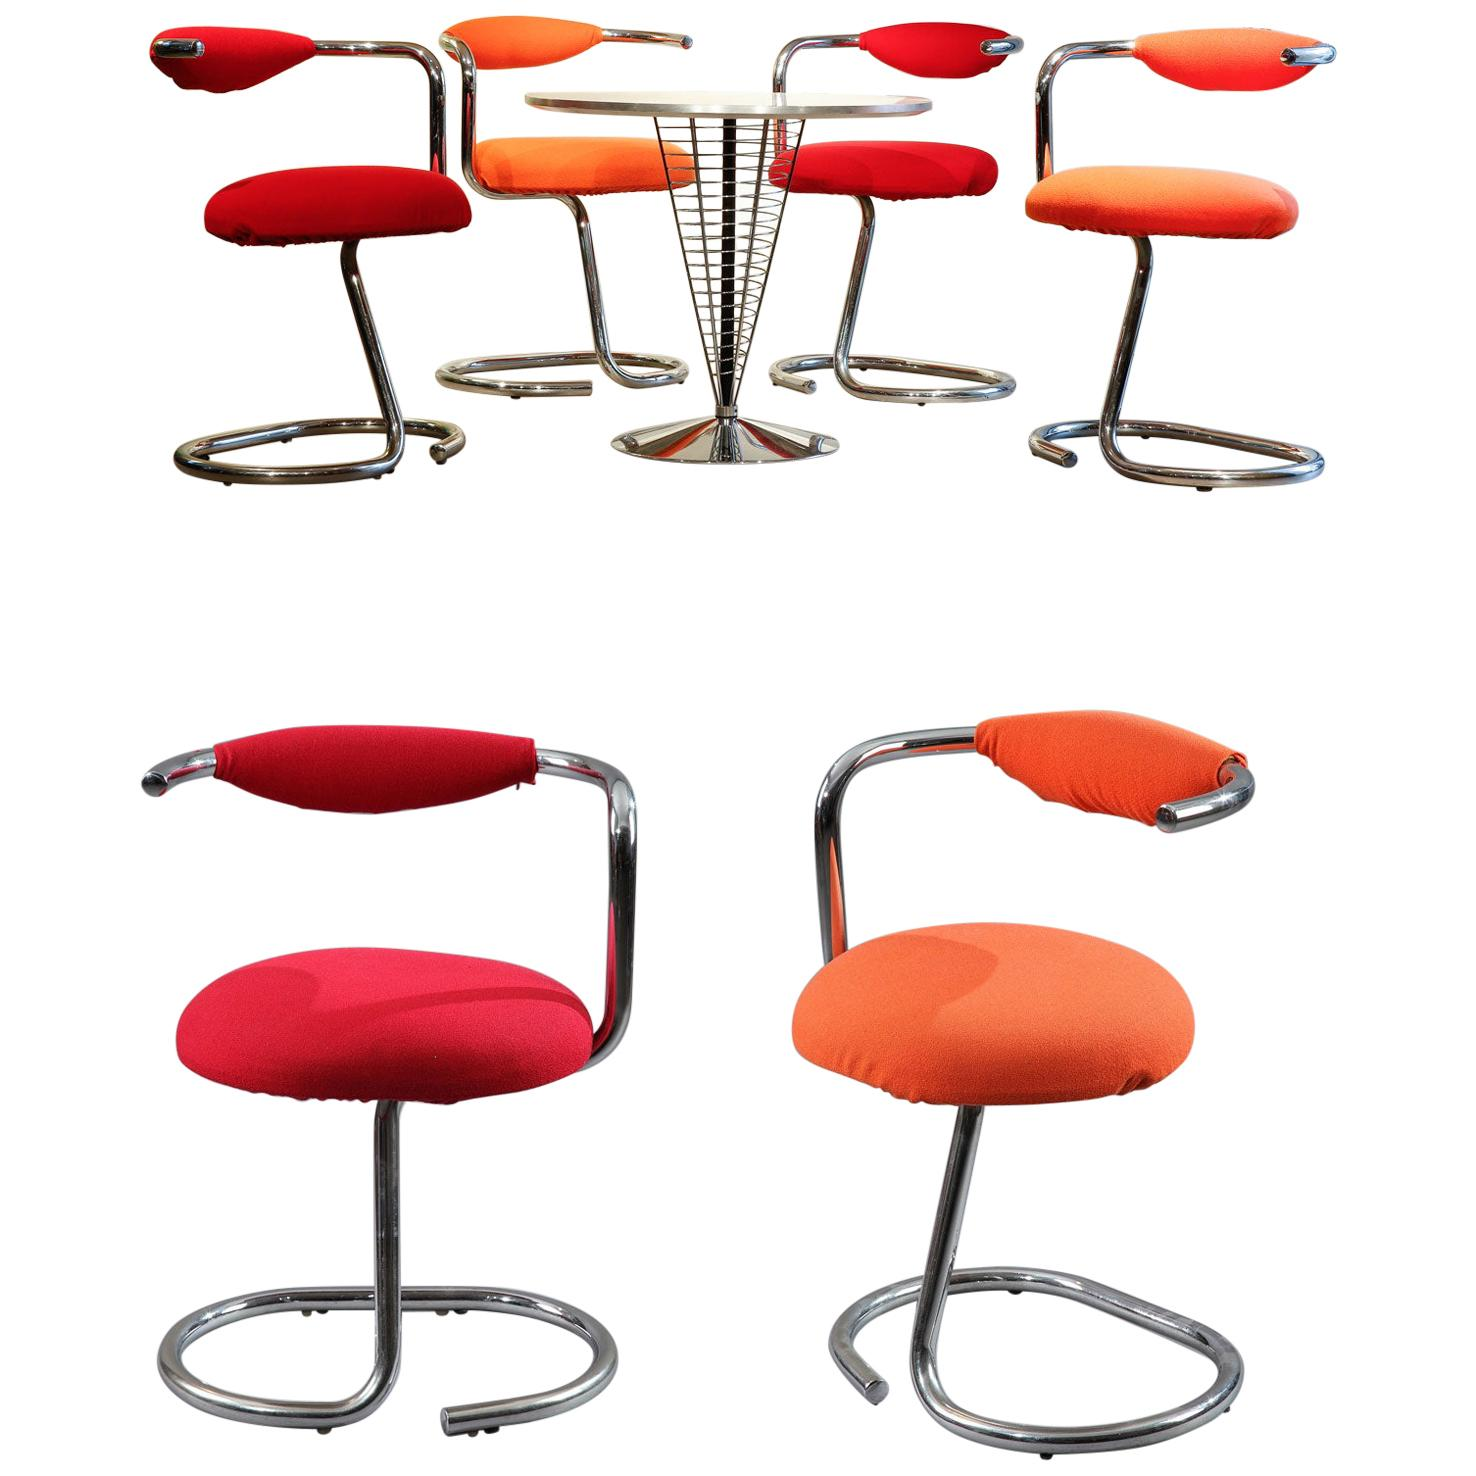 Set of 8 Cobra Chairs by Giotto Stoppino